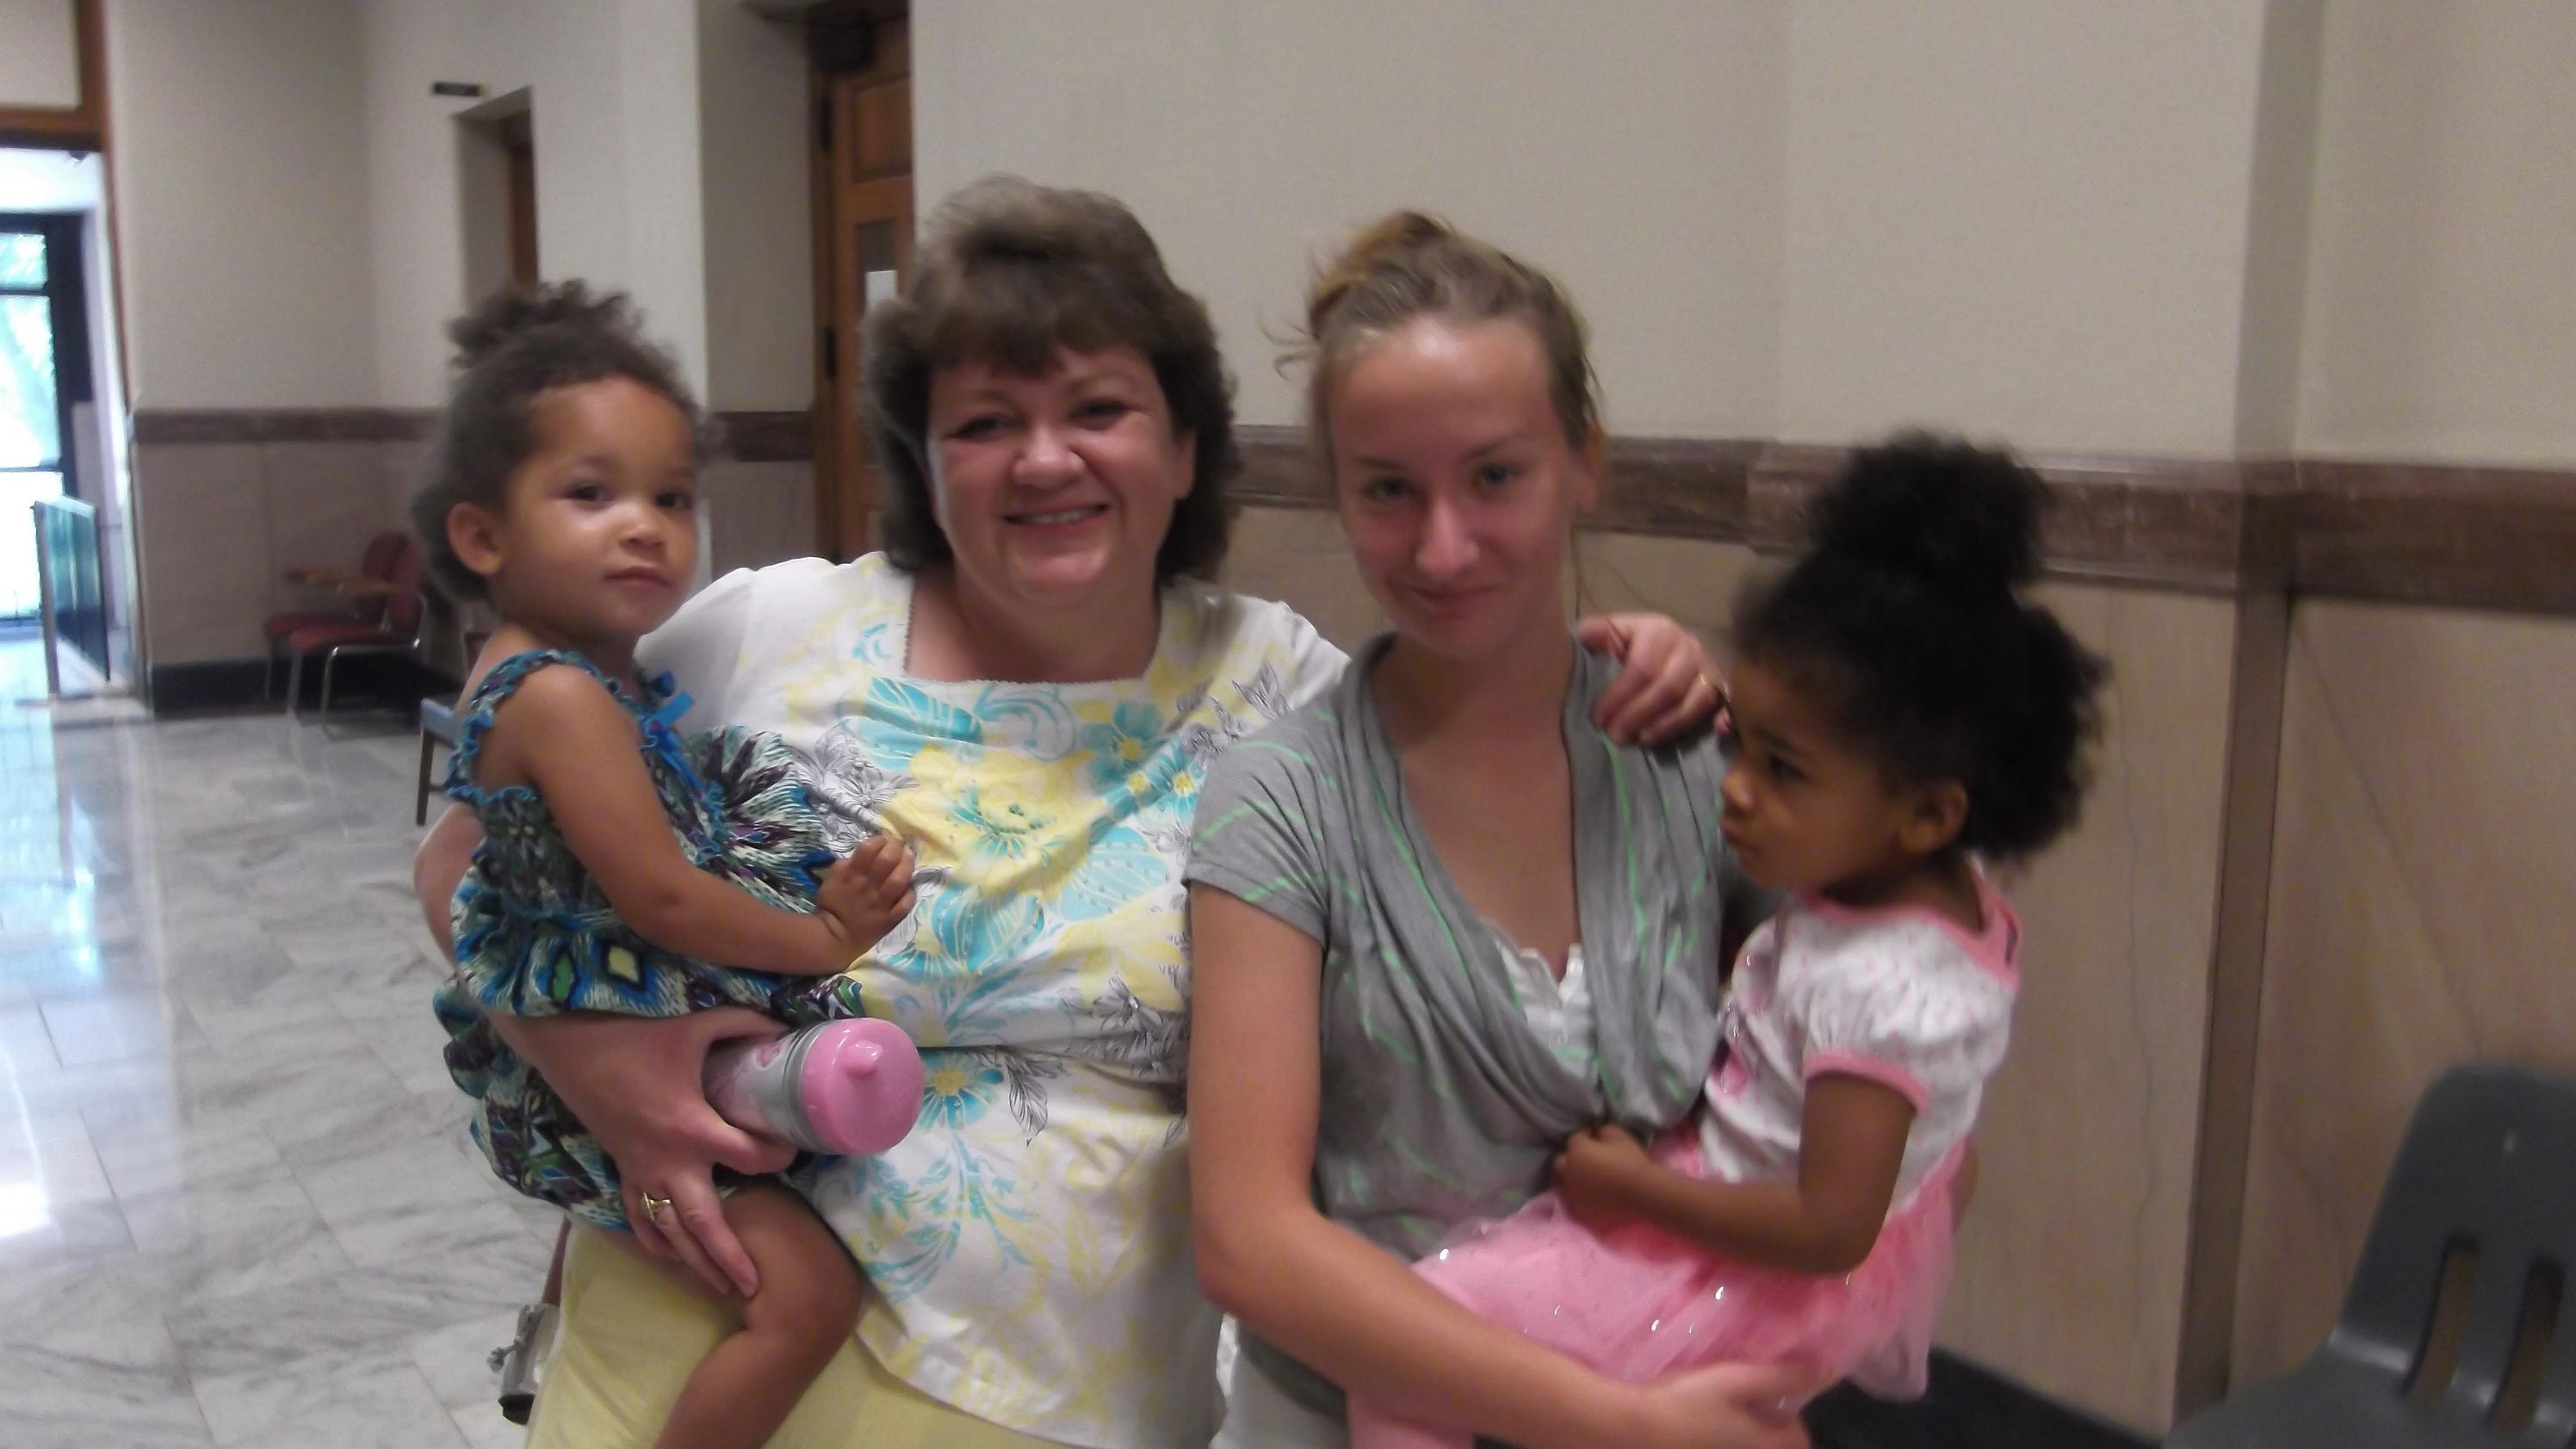 open adoptions indiana family At open adoption & family services, we have been cultivating and supporting open adoptions since our inception in 1985 in an open adoption, birthparents choose adoptive parents after reading a comprehensive packet of materials about them.